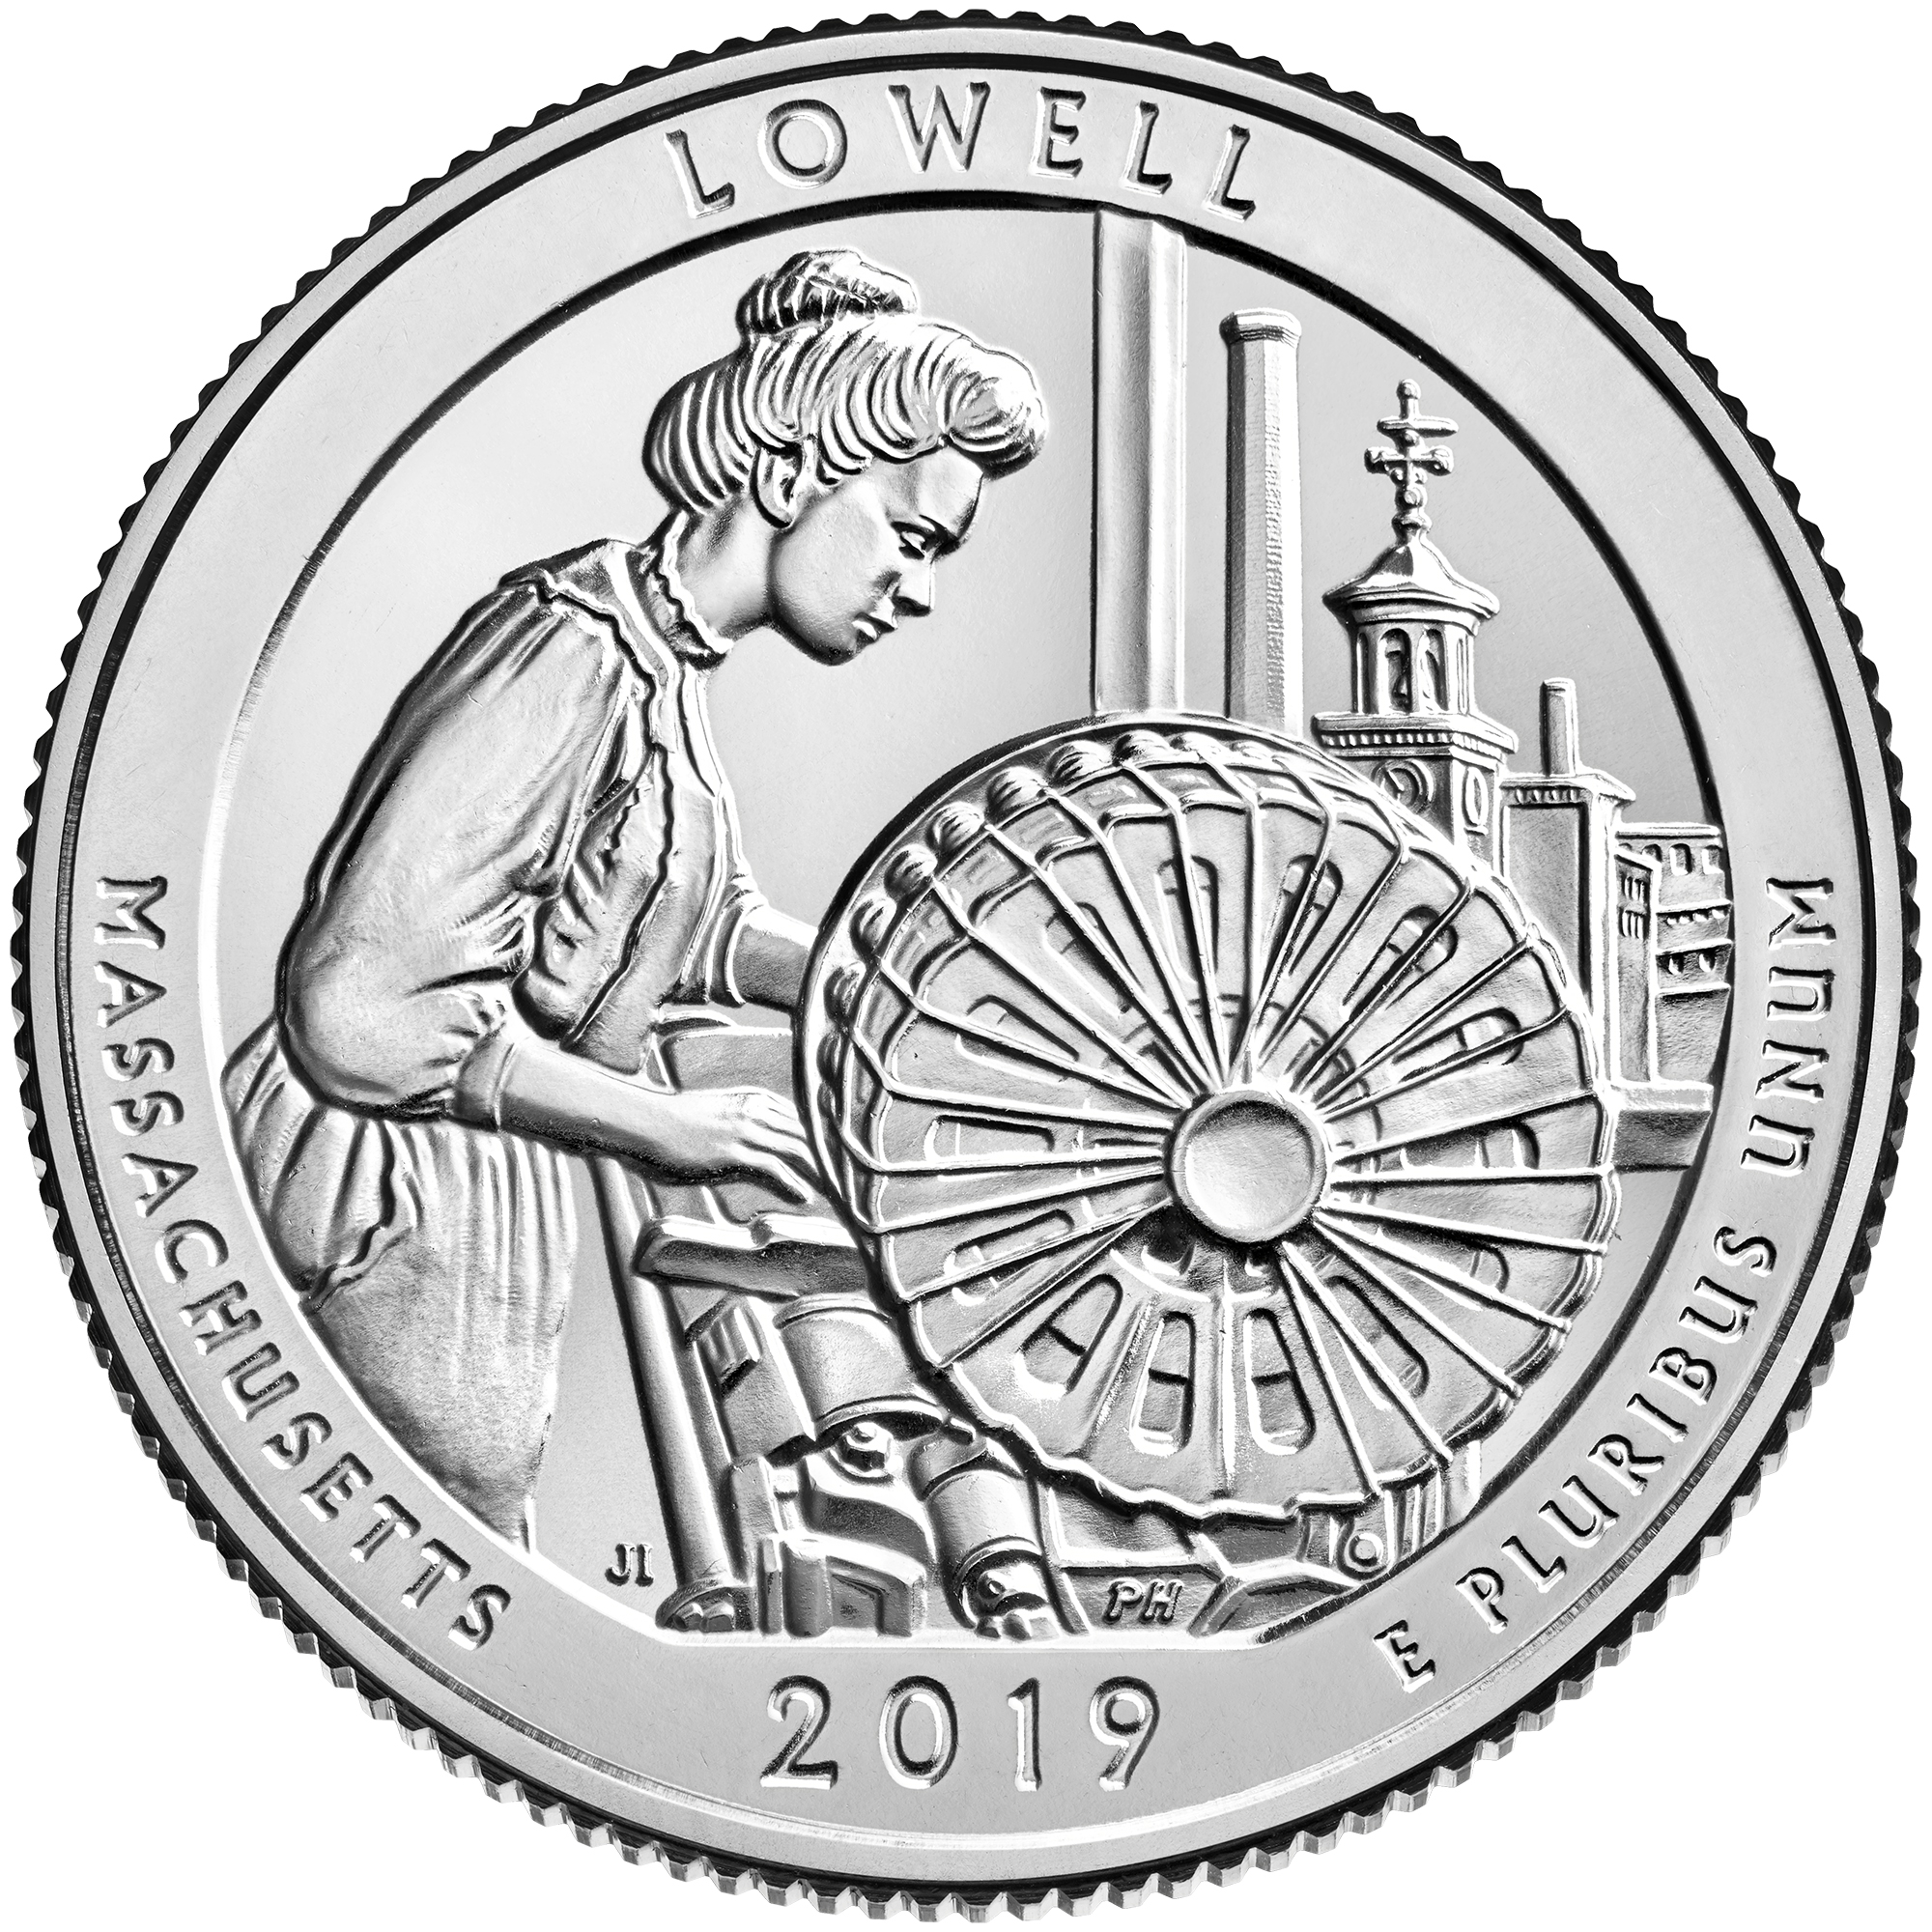 2019 America the Beautiful Quarters Coin Lowell Massachusetts Uncirculated Reverse